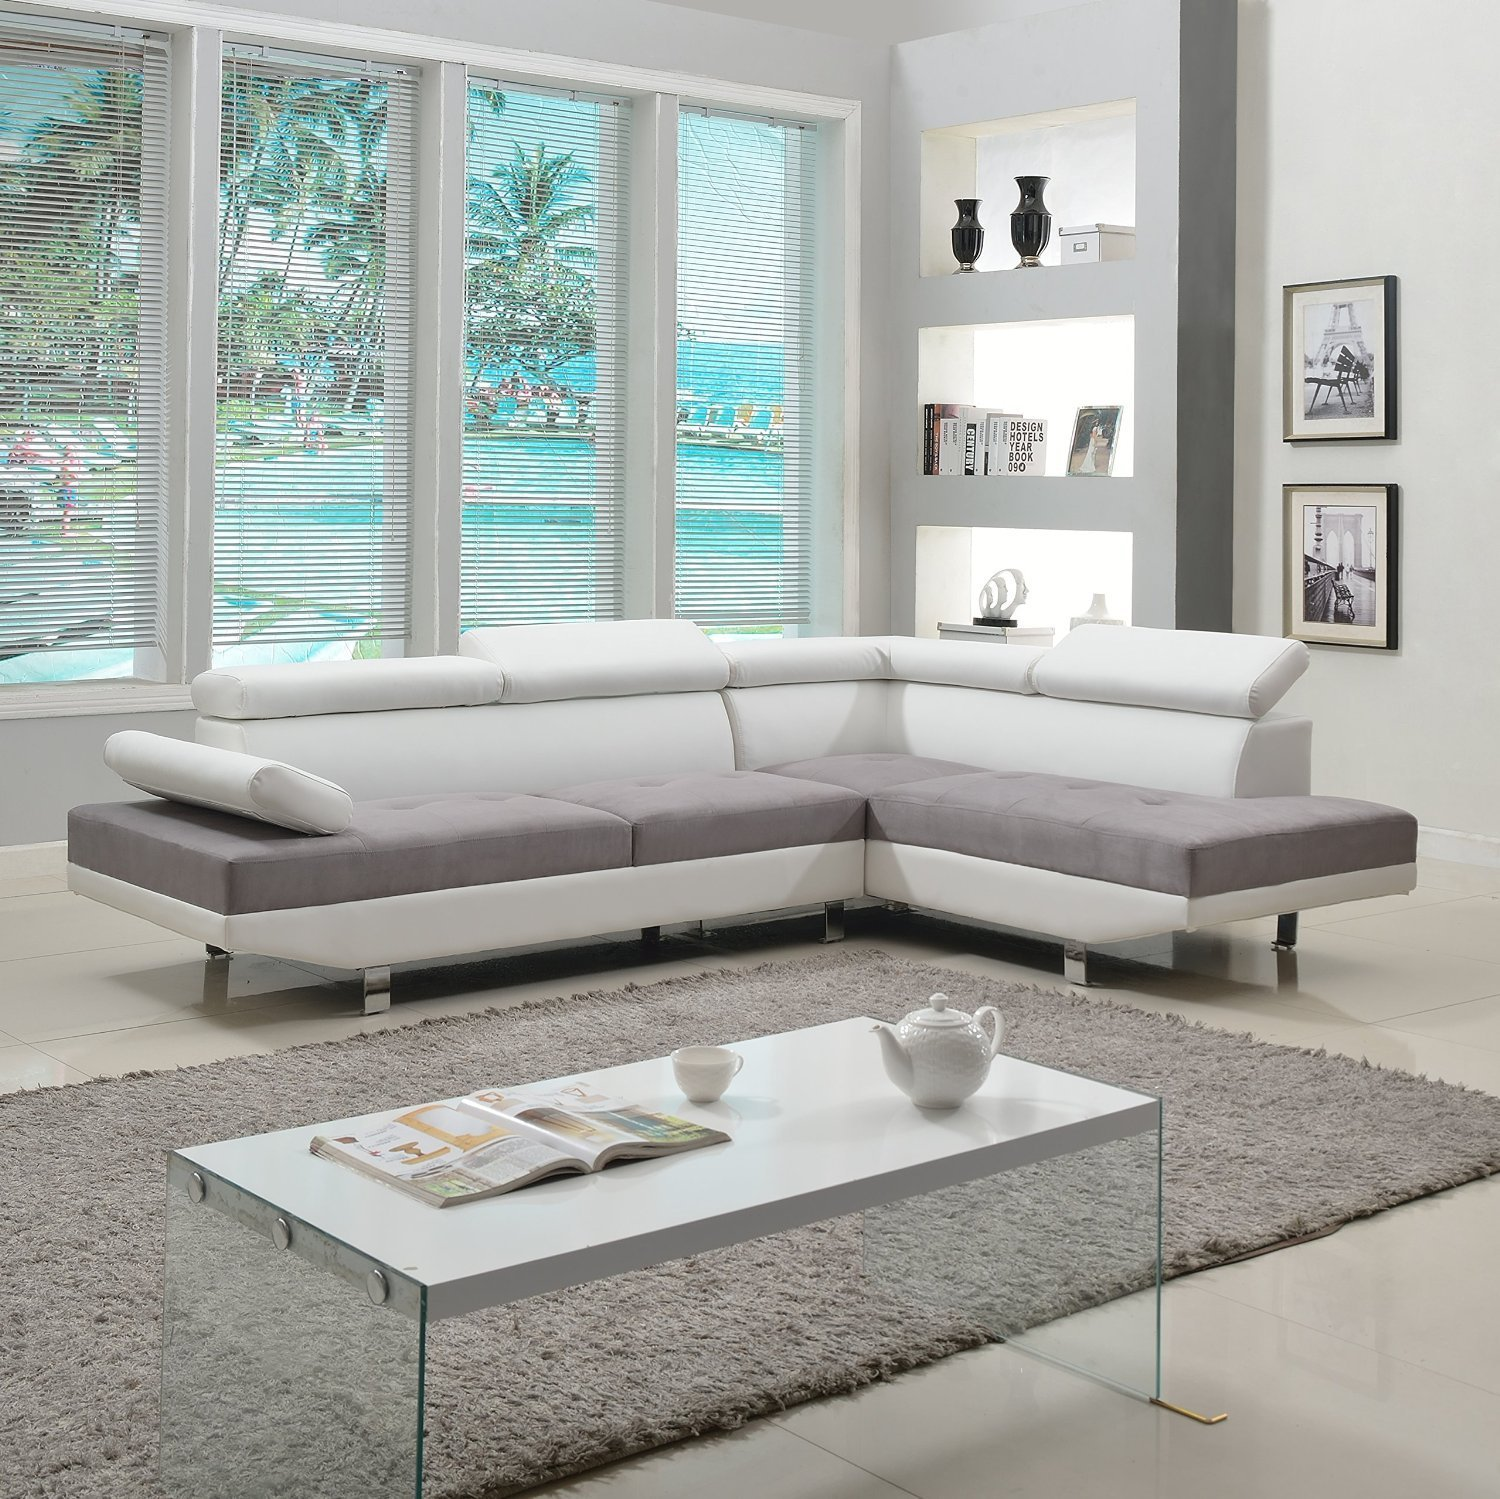 Contemporary Furniture Of Modern Living Room Furniture Review Find The Best One